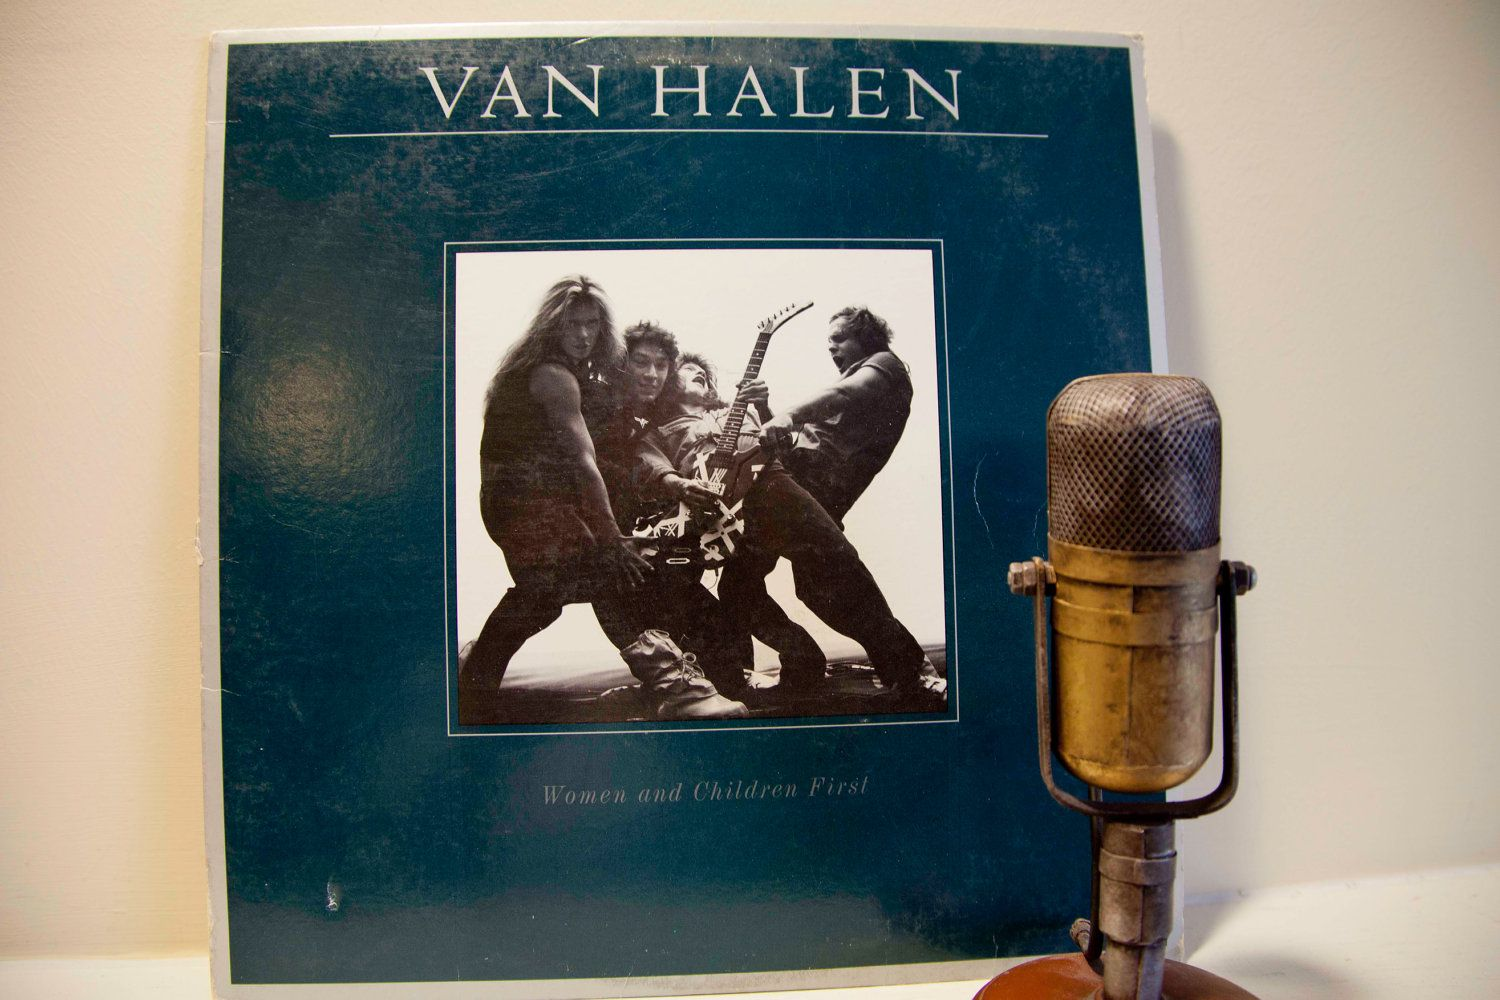 Van Halen Women And Children First Vinyl Record Album 1980s Rock And Roll Original 1980 Wb Records No Poster Van Halen Vinyl Poster Classic Album Covers